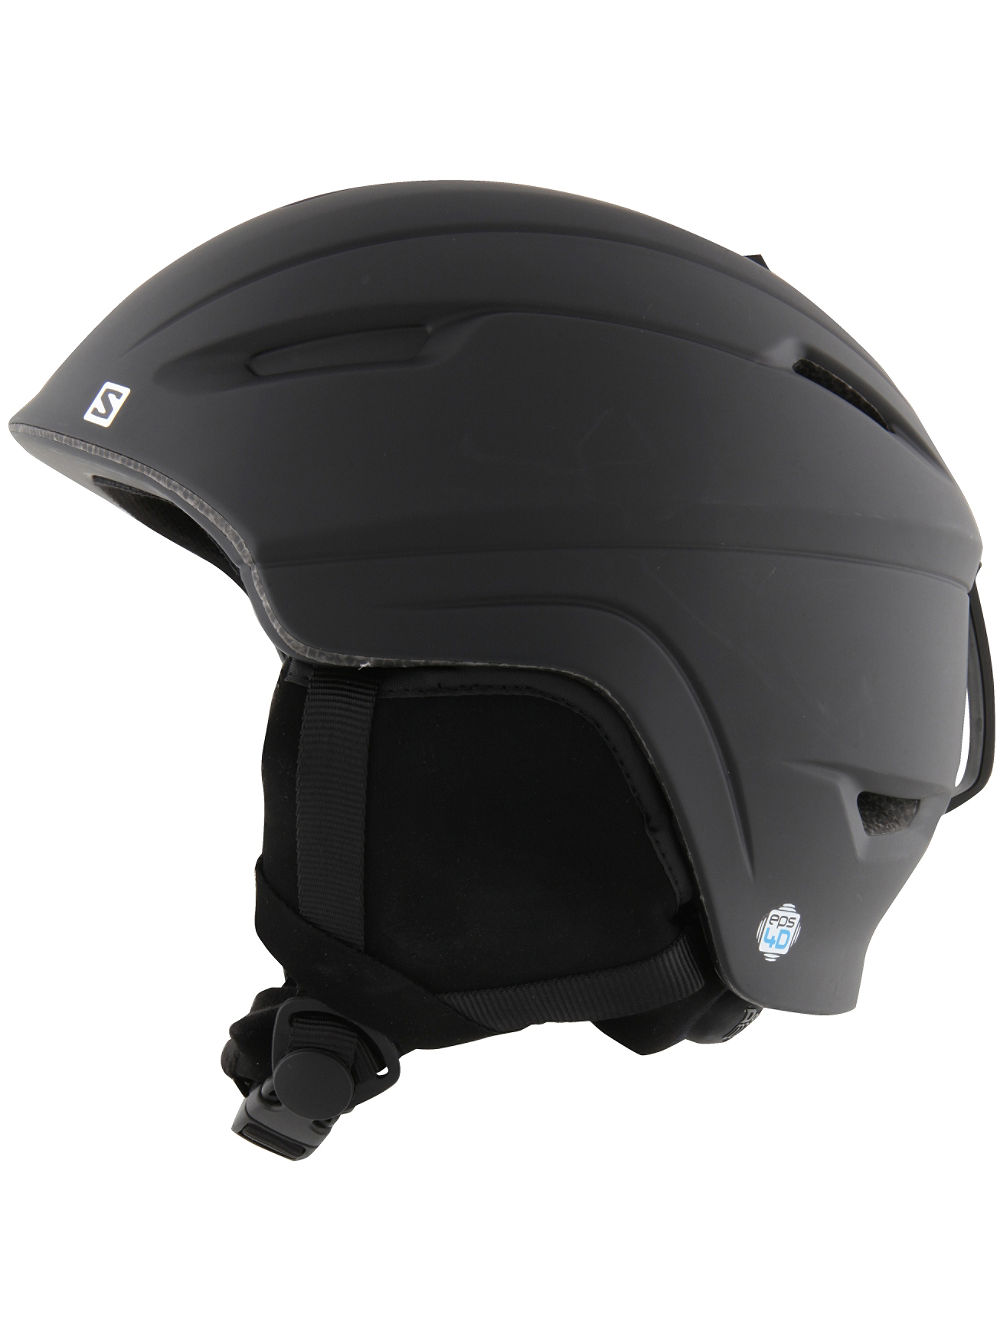 Ranger Access C.Air Helm